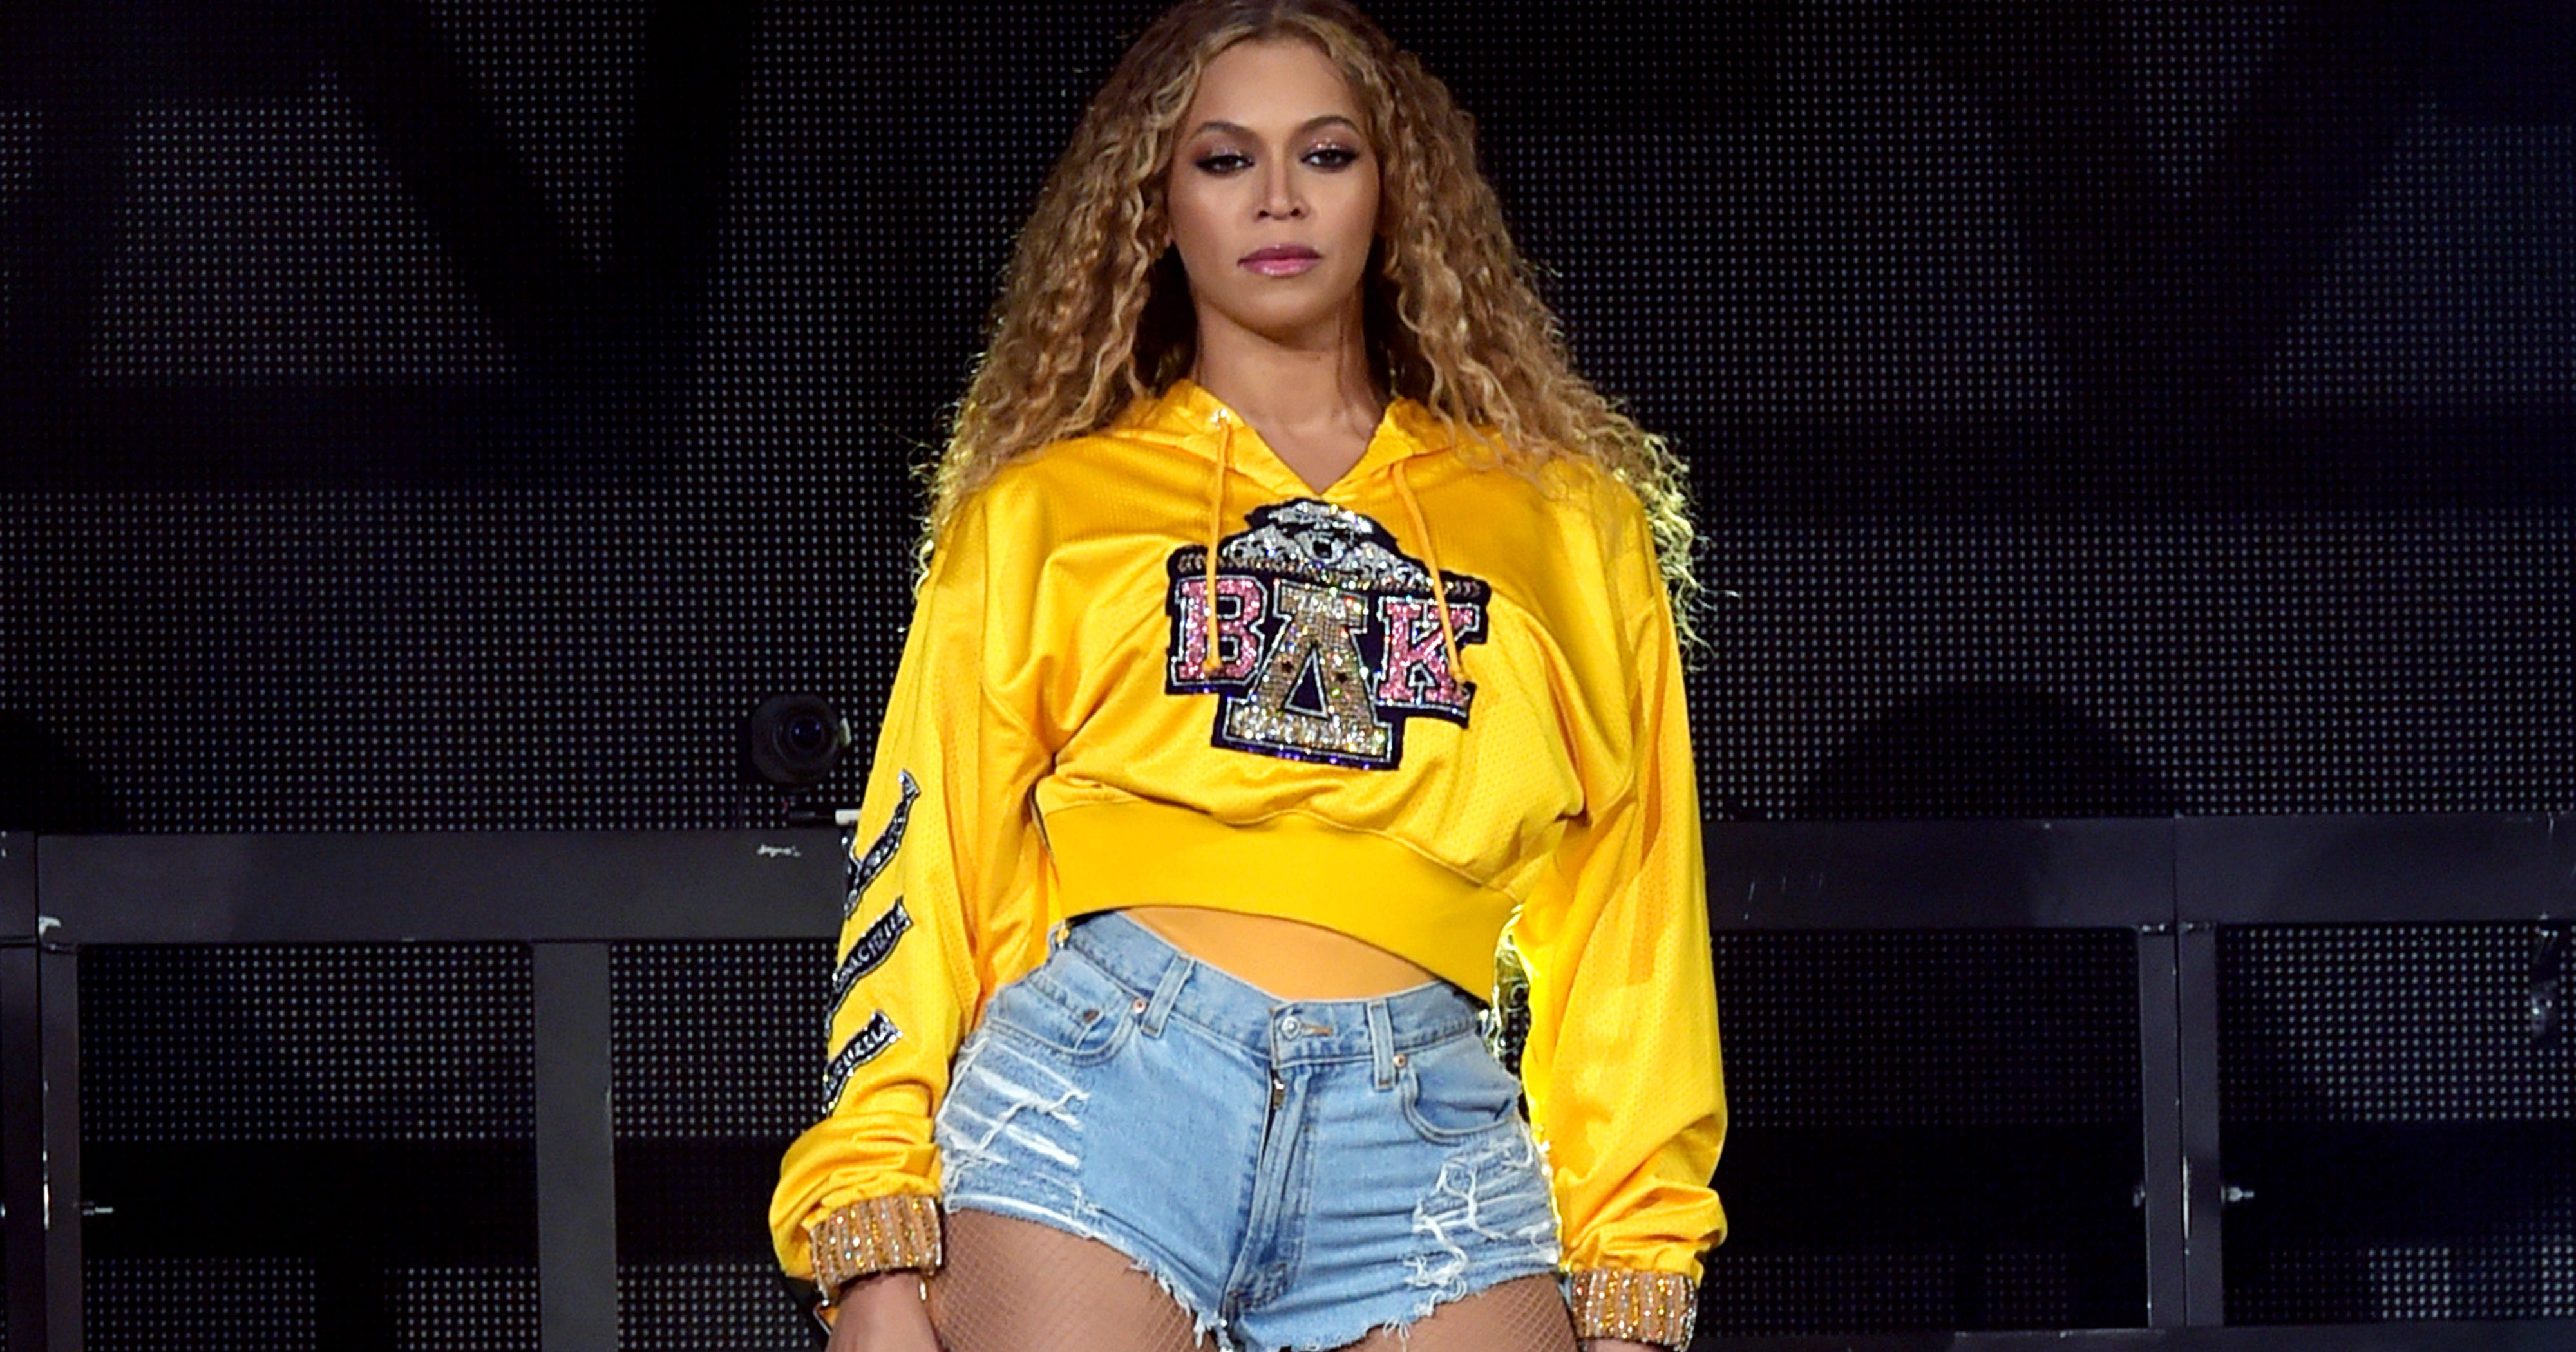 How To Always Look Your Best, According To Beyoncé's Stylist